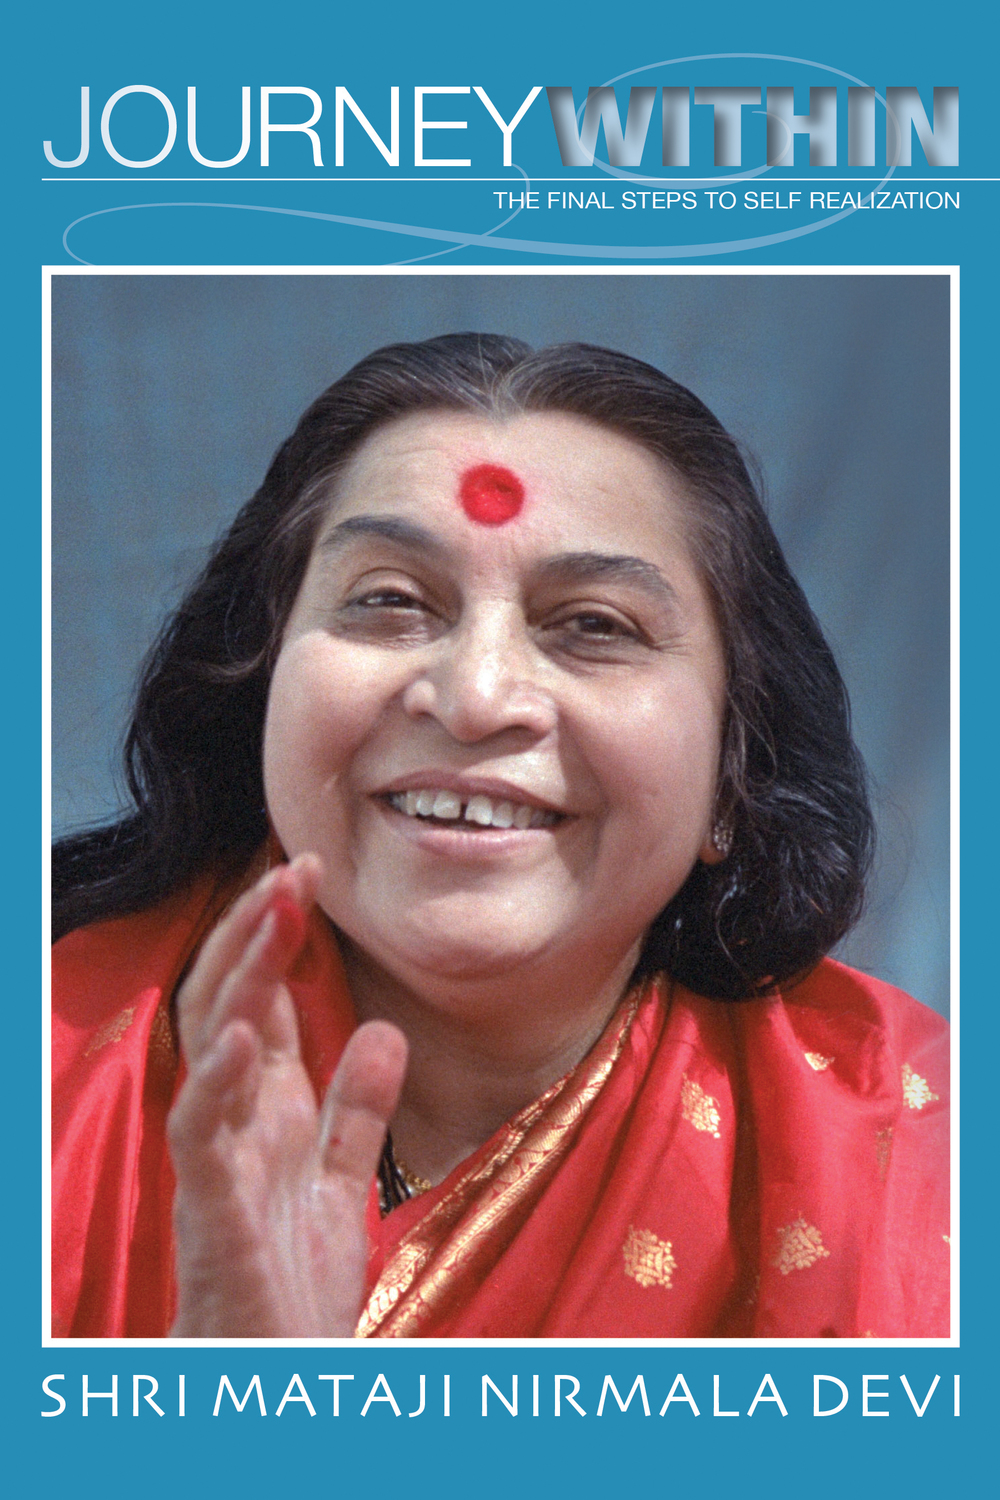 An introduction to Sahaja Yoga entirely in the words of Shri Mataji Nirmala Devi